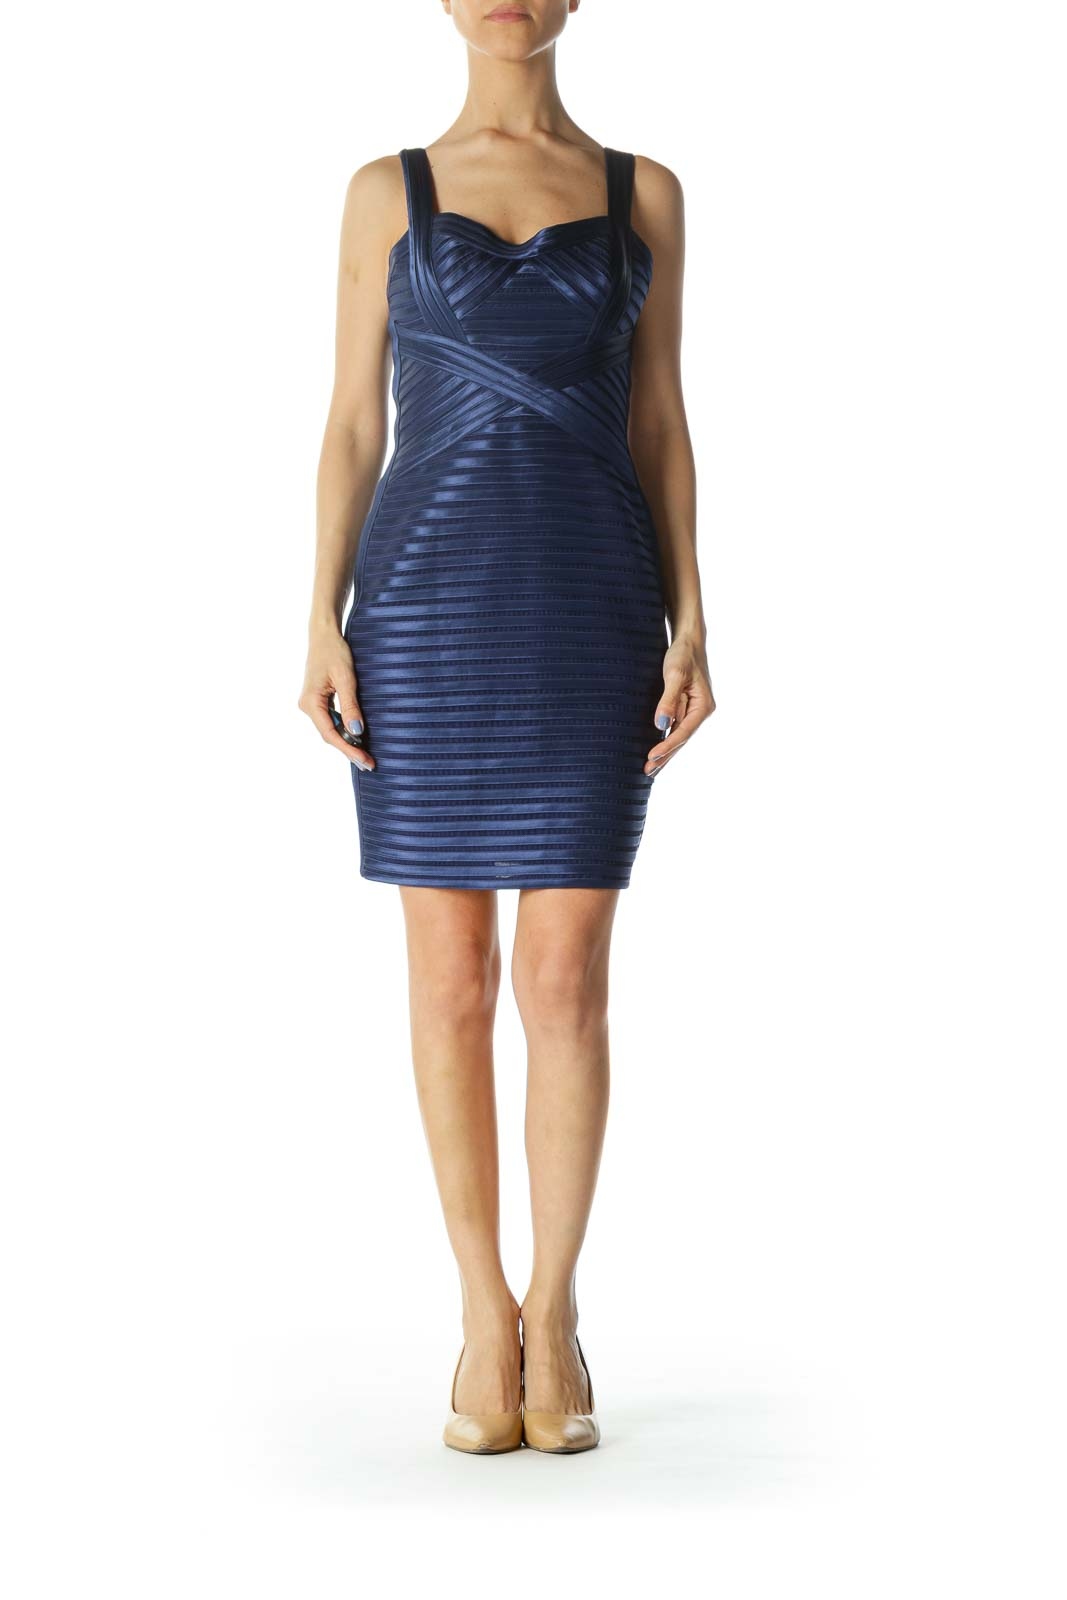 Satin Blue Sweetheart Neckline Mesh Textured Cocktail Dress